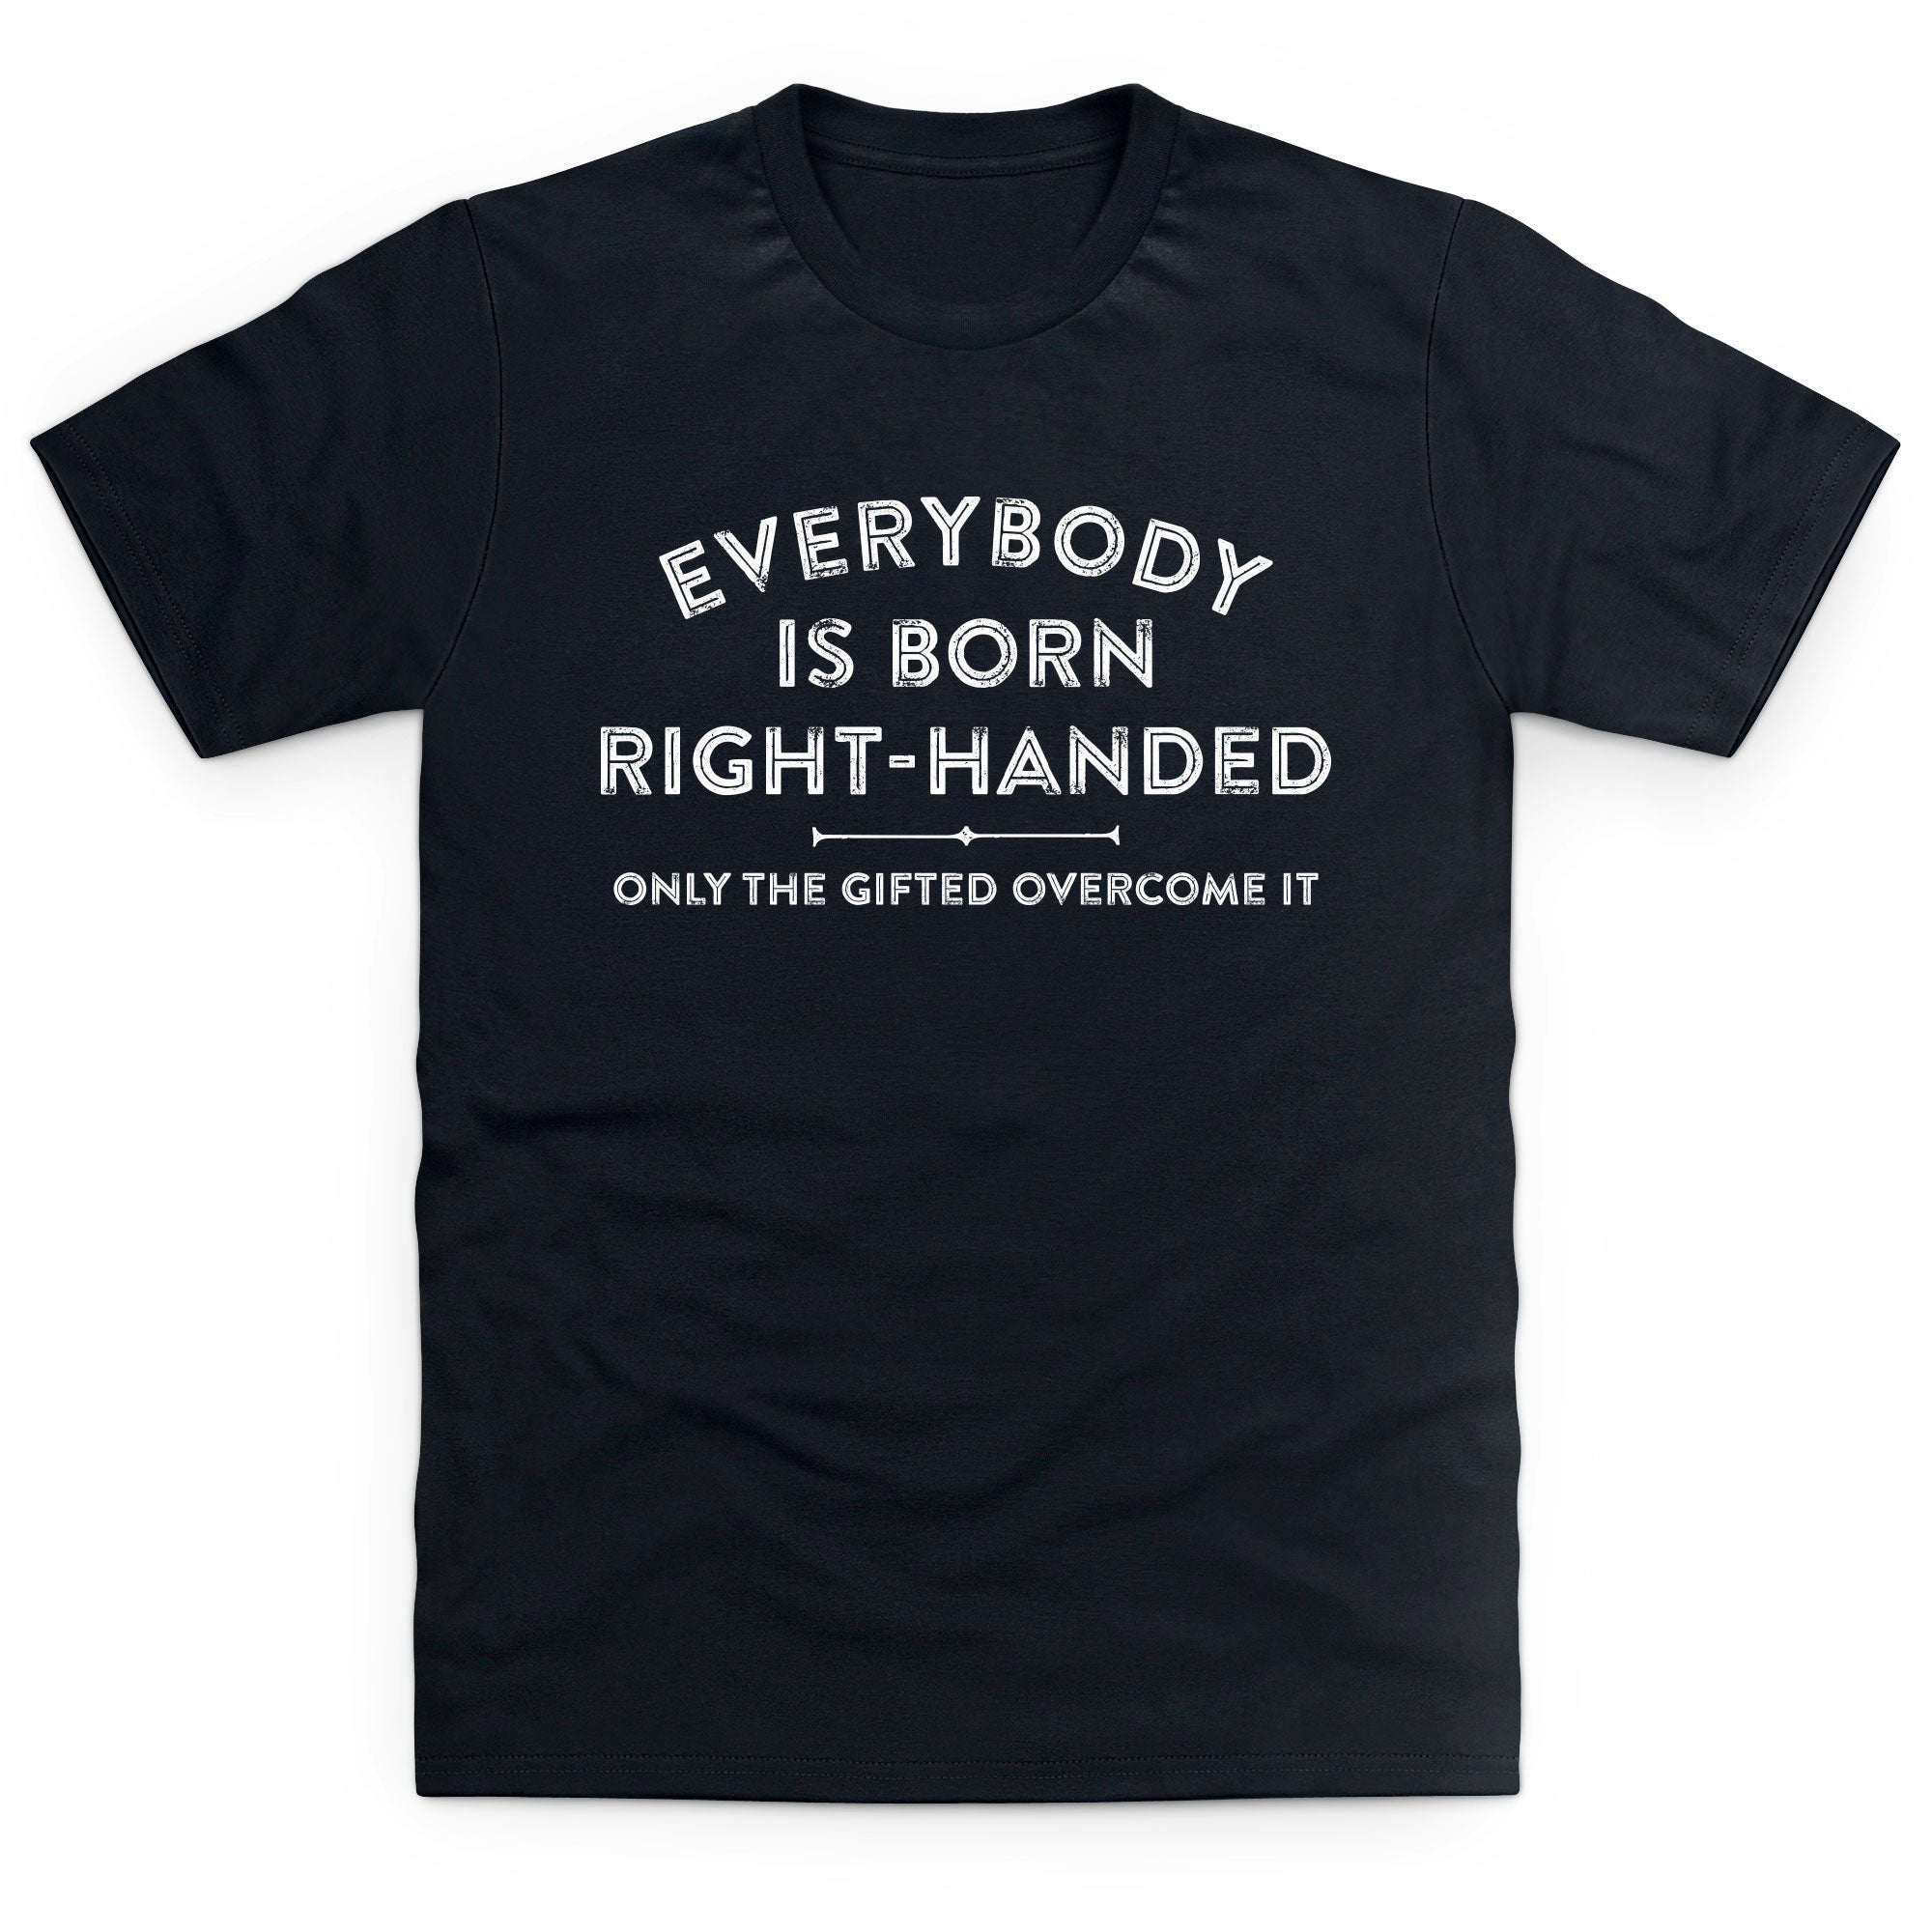 CHEAP Born Right-Handed Kid's T Shirt 25874570179 – Clothing Accessories